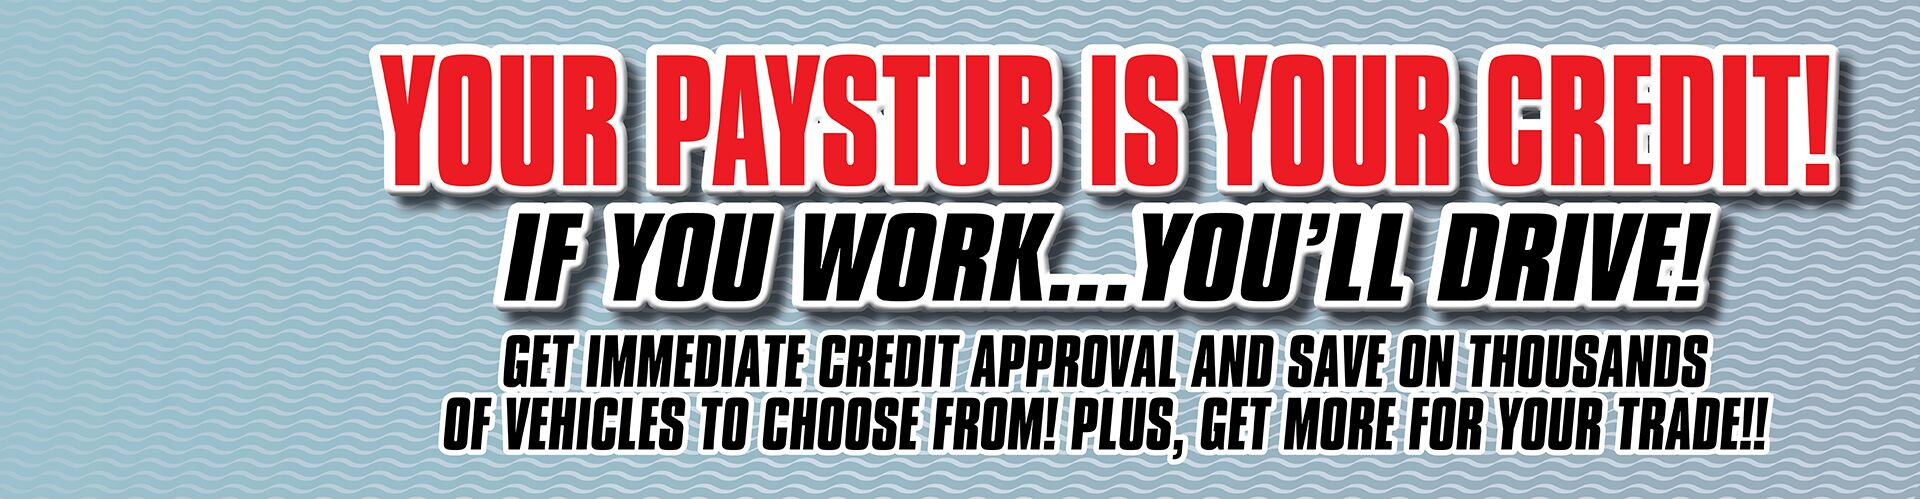 Your Paystub Is Your Credit! - Trade In Your Old Car!